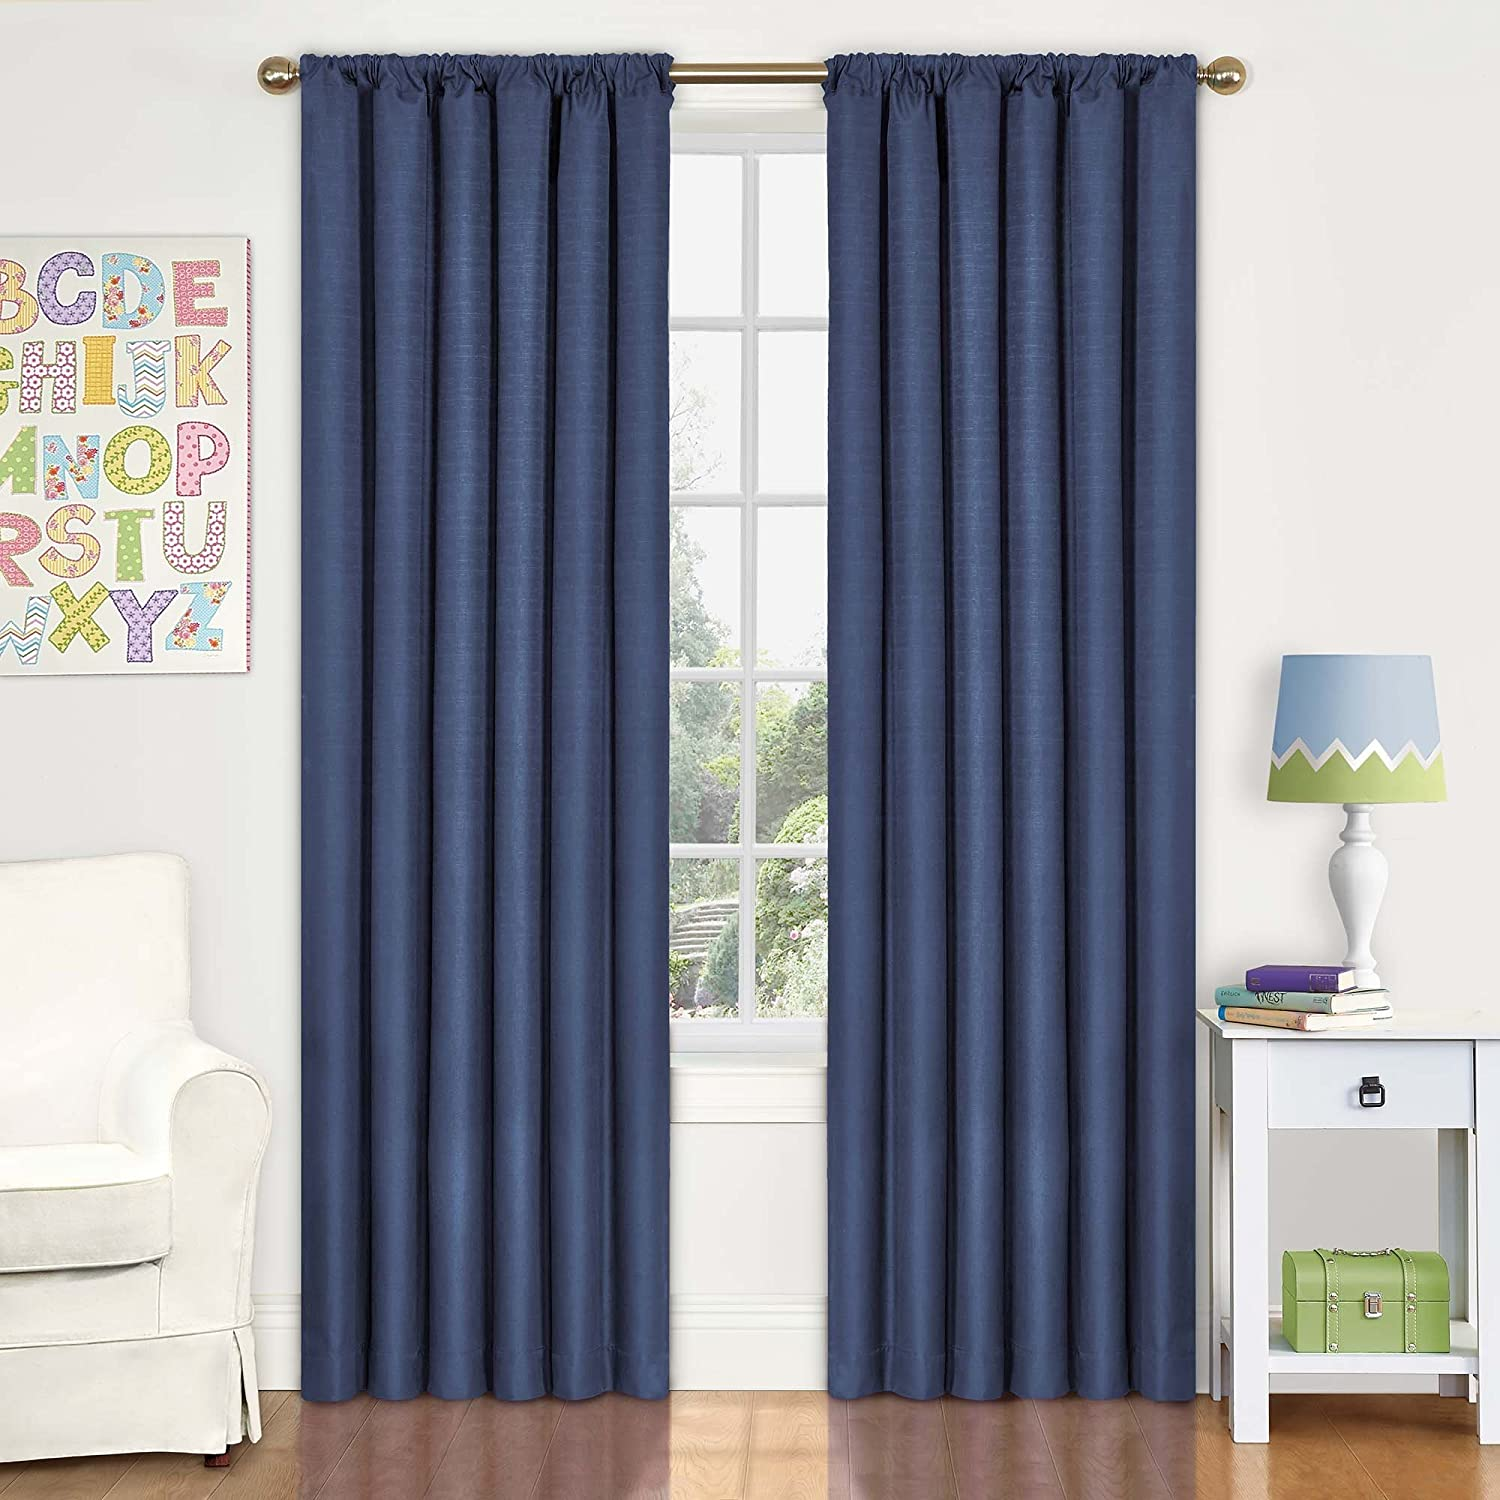 Amazon.com: Eclipse Kids Kendall Blackout Thermal Curtain Panel,Denim, 42  Inch X 63 Inch: Home & Kitchen - Amazon.com: Eclipse Kids Kendall Blackout Thermal Curtain Panel